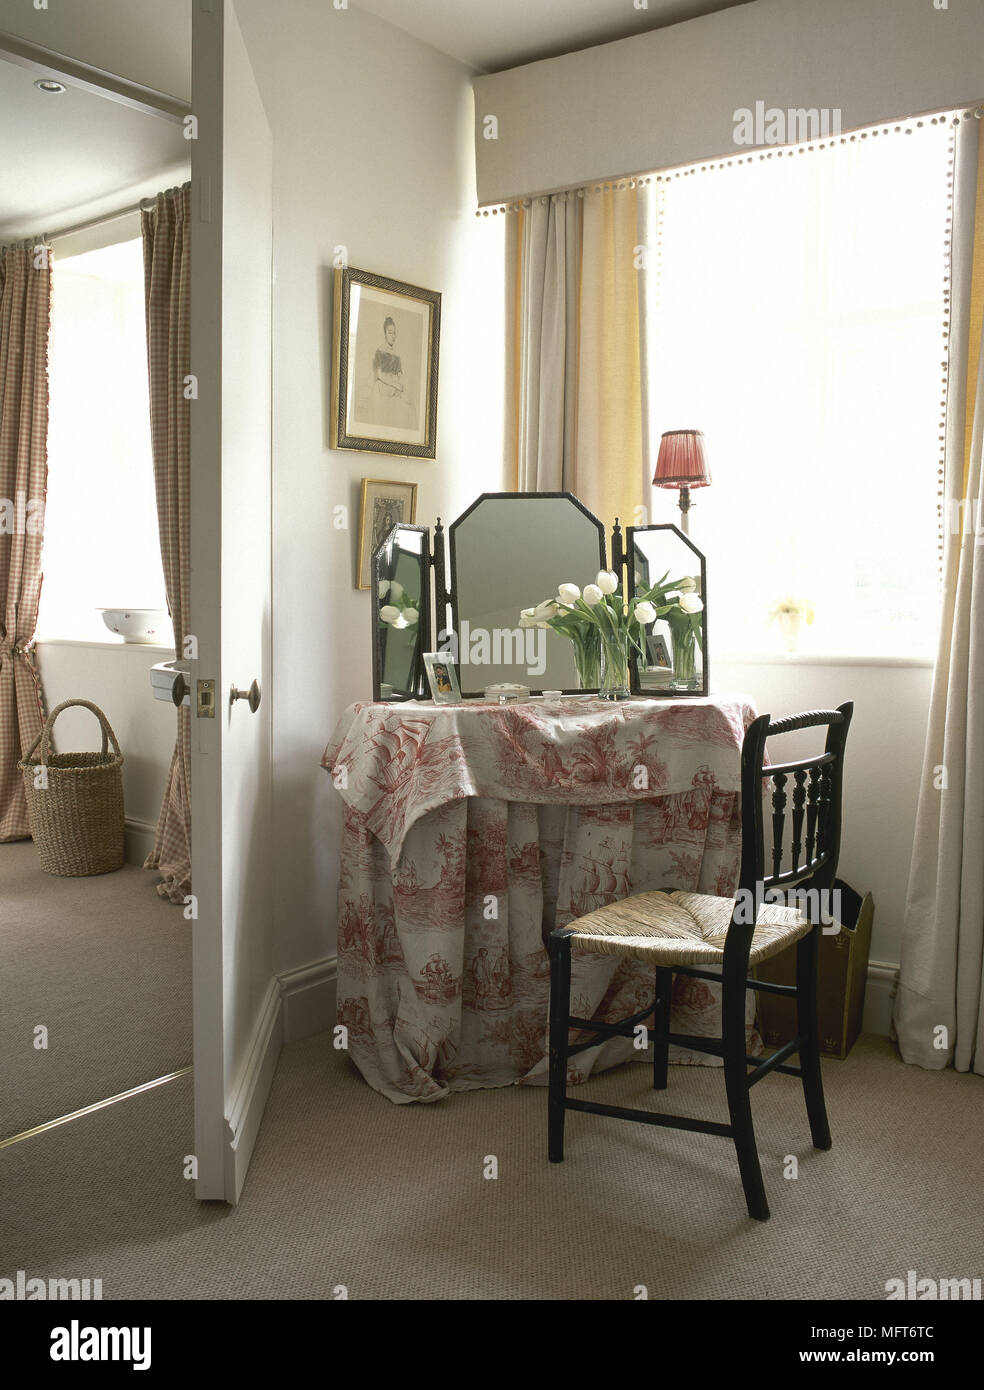 Bedroom Detail With Dressing Table Covered In Red Toile De Jouy Fabric Stock Photo Alamy